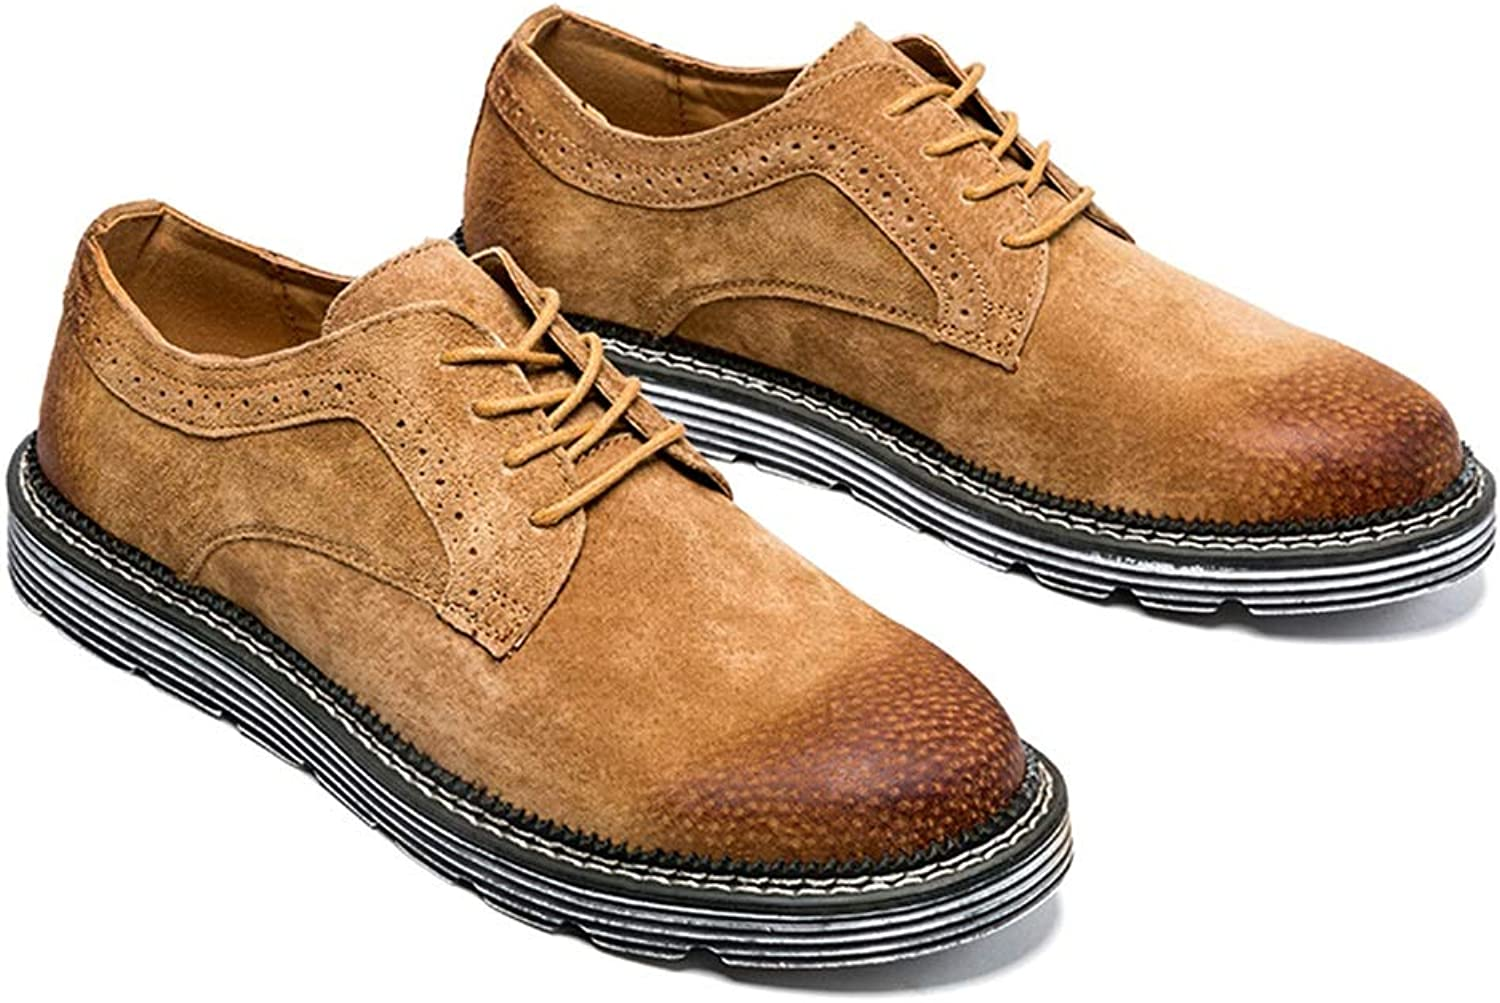 Men's Work Boots Low Top Lace Up Boot Suede Ankle Short Boots Oxfords Slip On Leather Upper Round Toe (color   Yellow-Brown, Size   9 D(M) US)